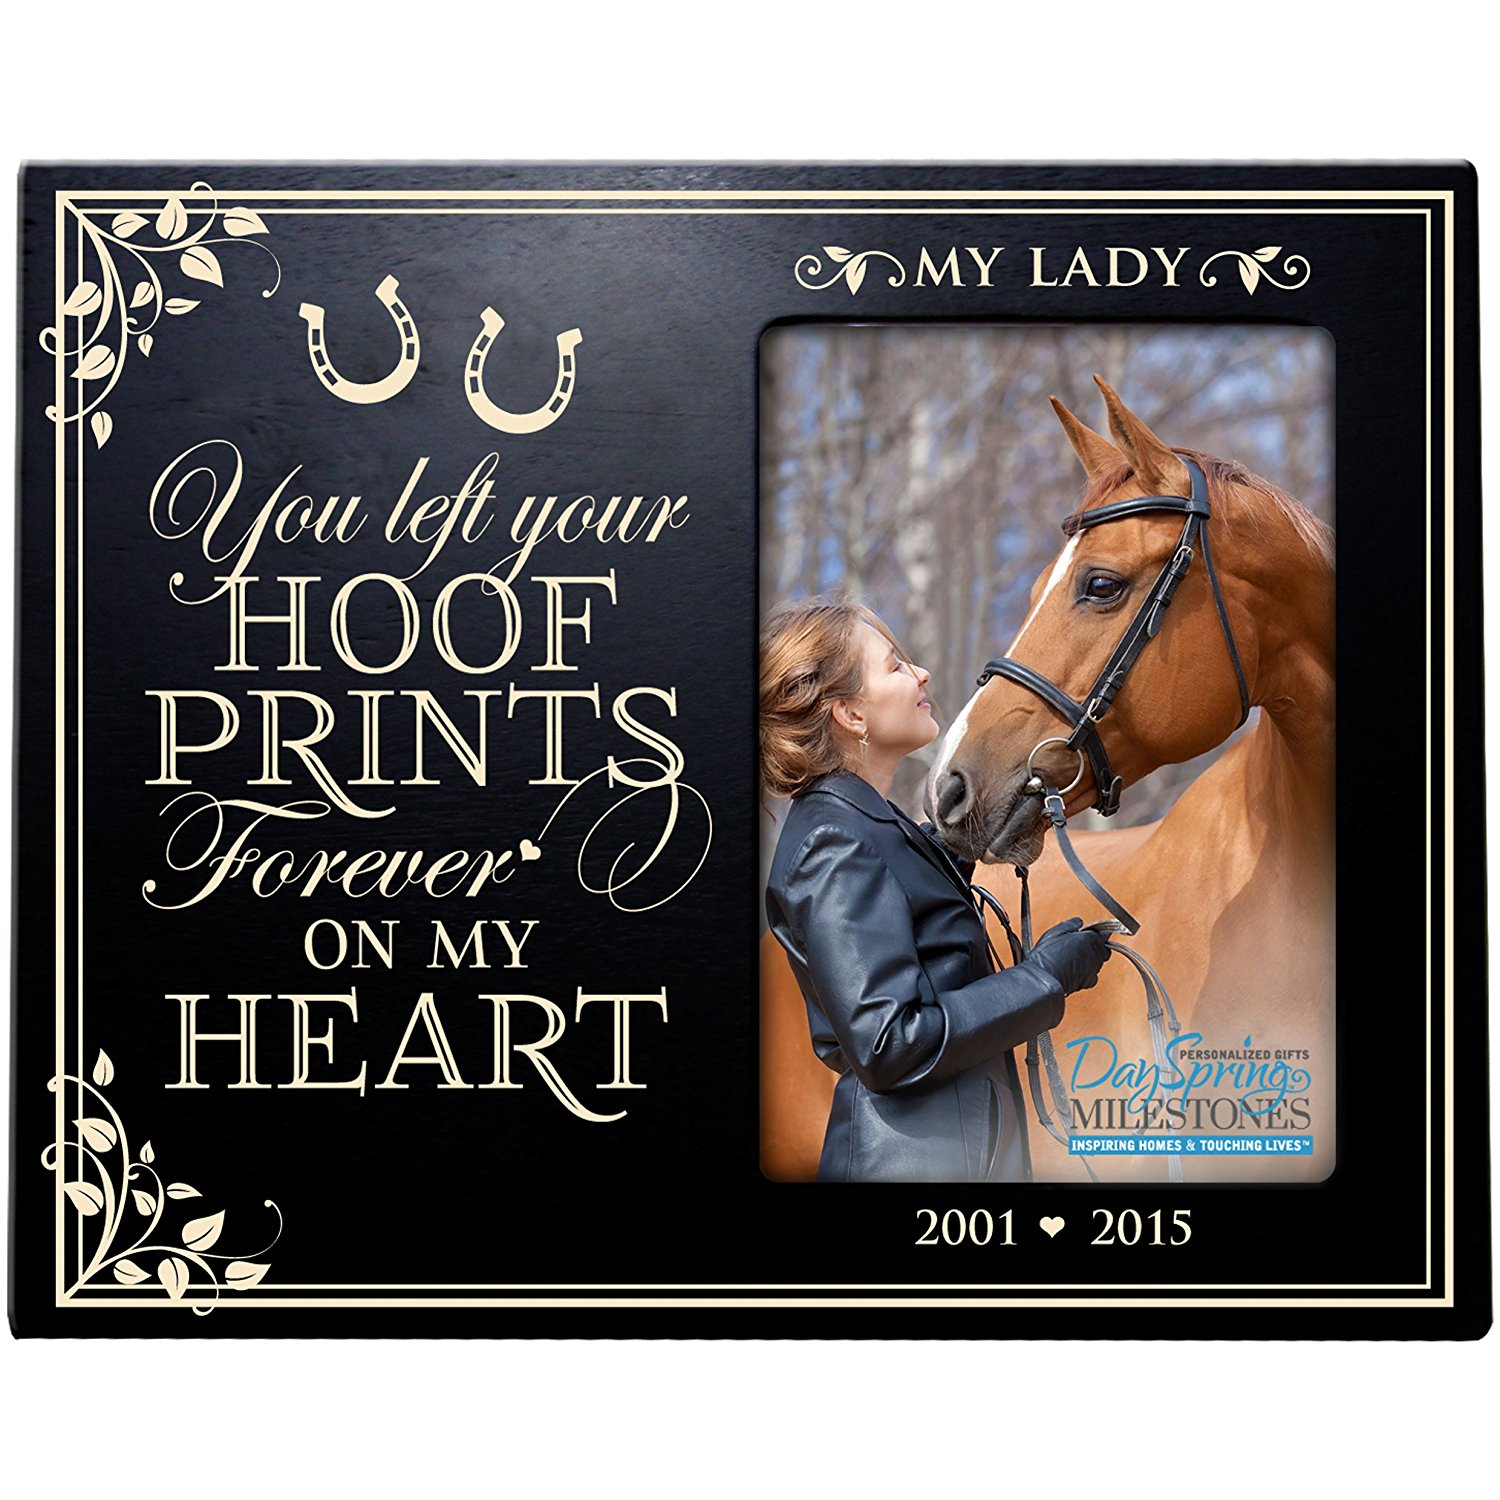 Personalized Pet Memorial Gift, Sympathy Photo Frame, You Left Your Hoof Prints Forever On